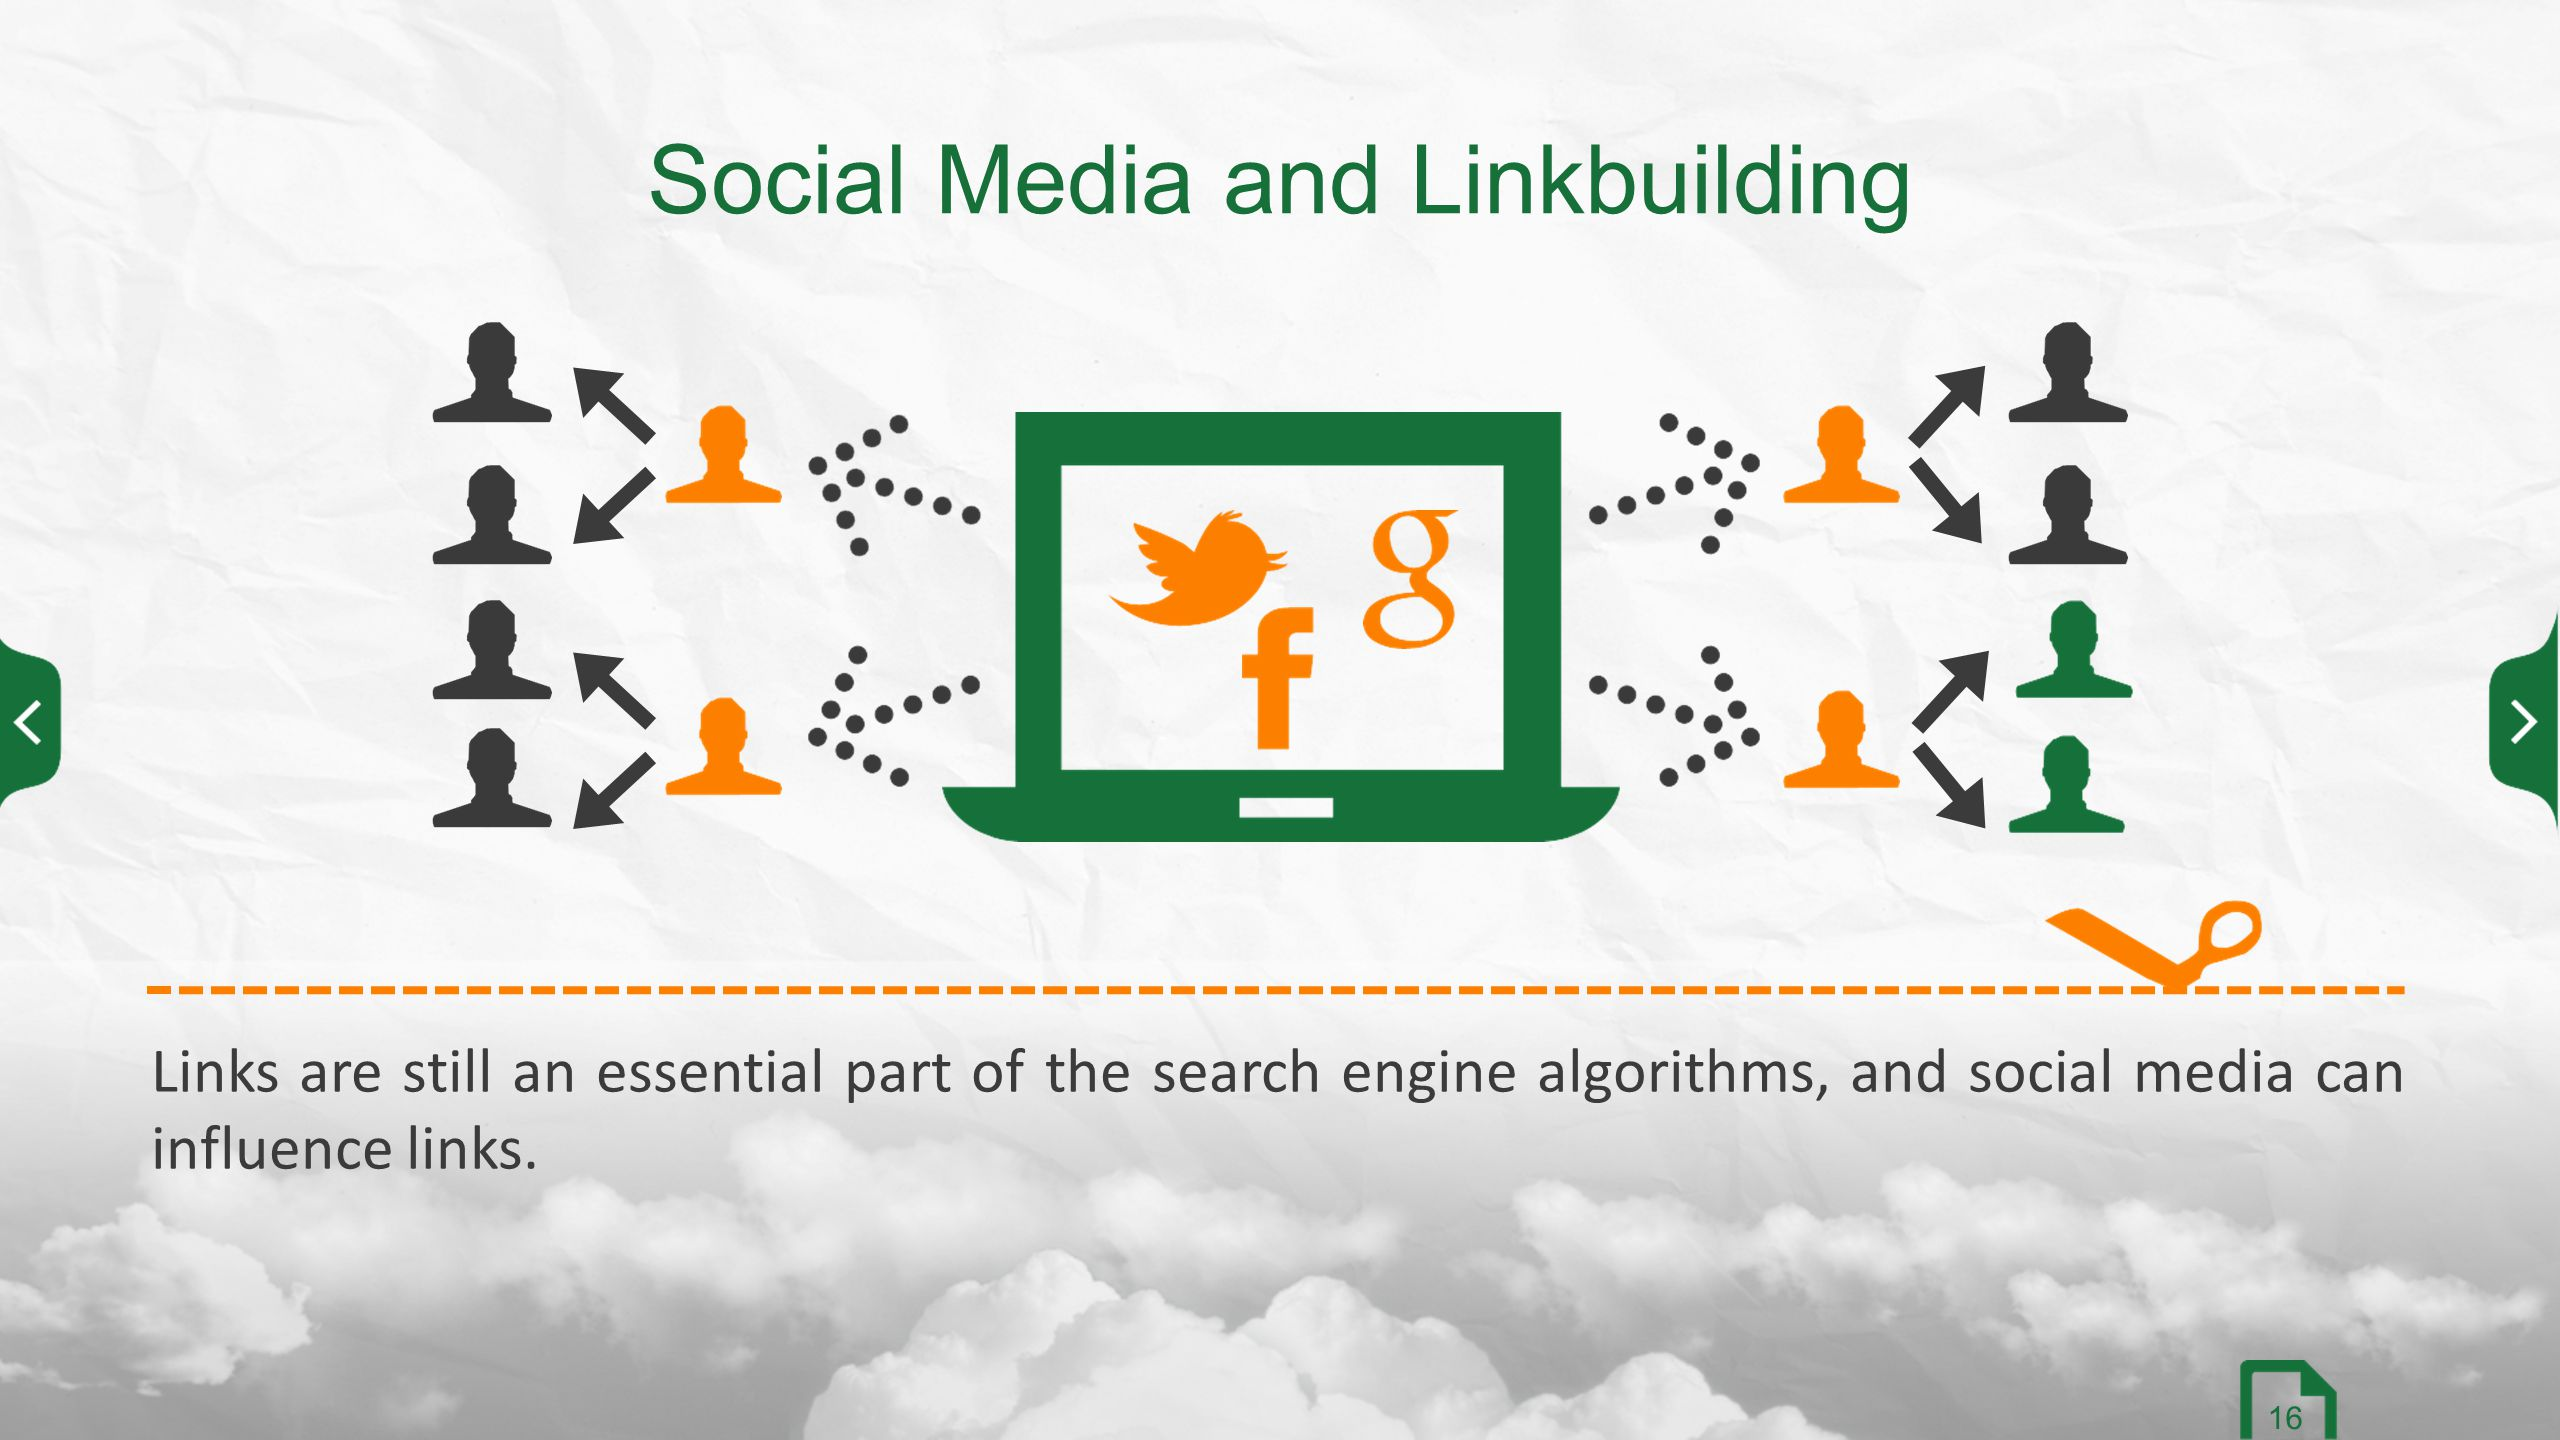 Links are still an essential part of the search engine algorithms, and social media can influence links.